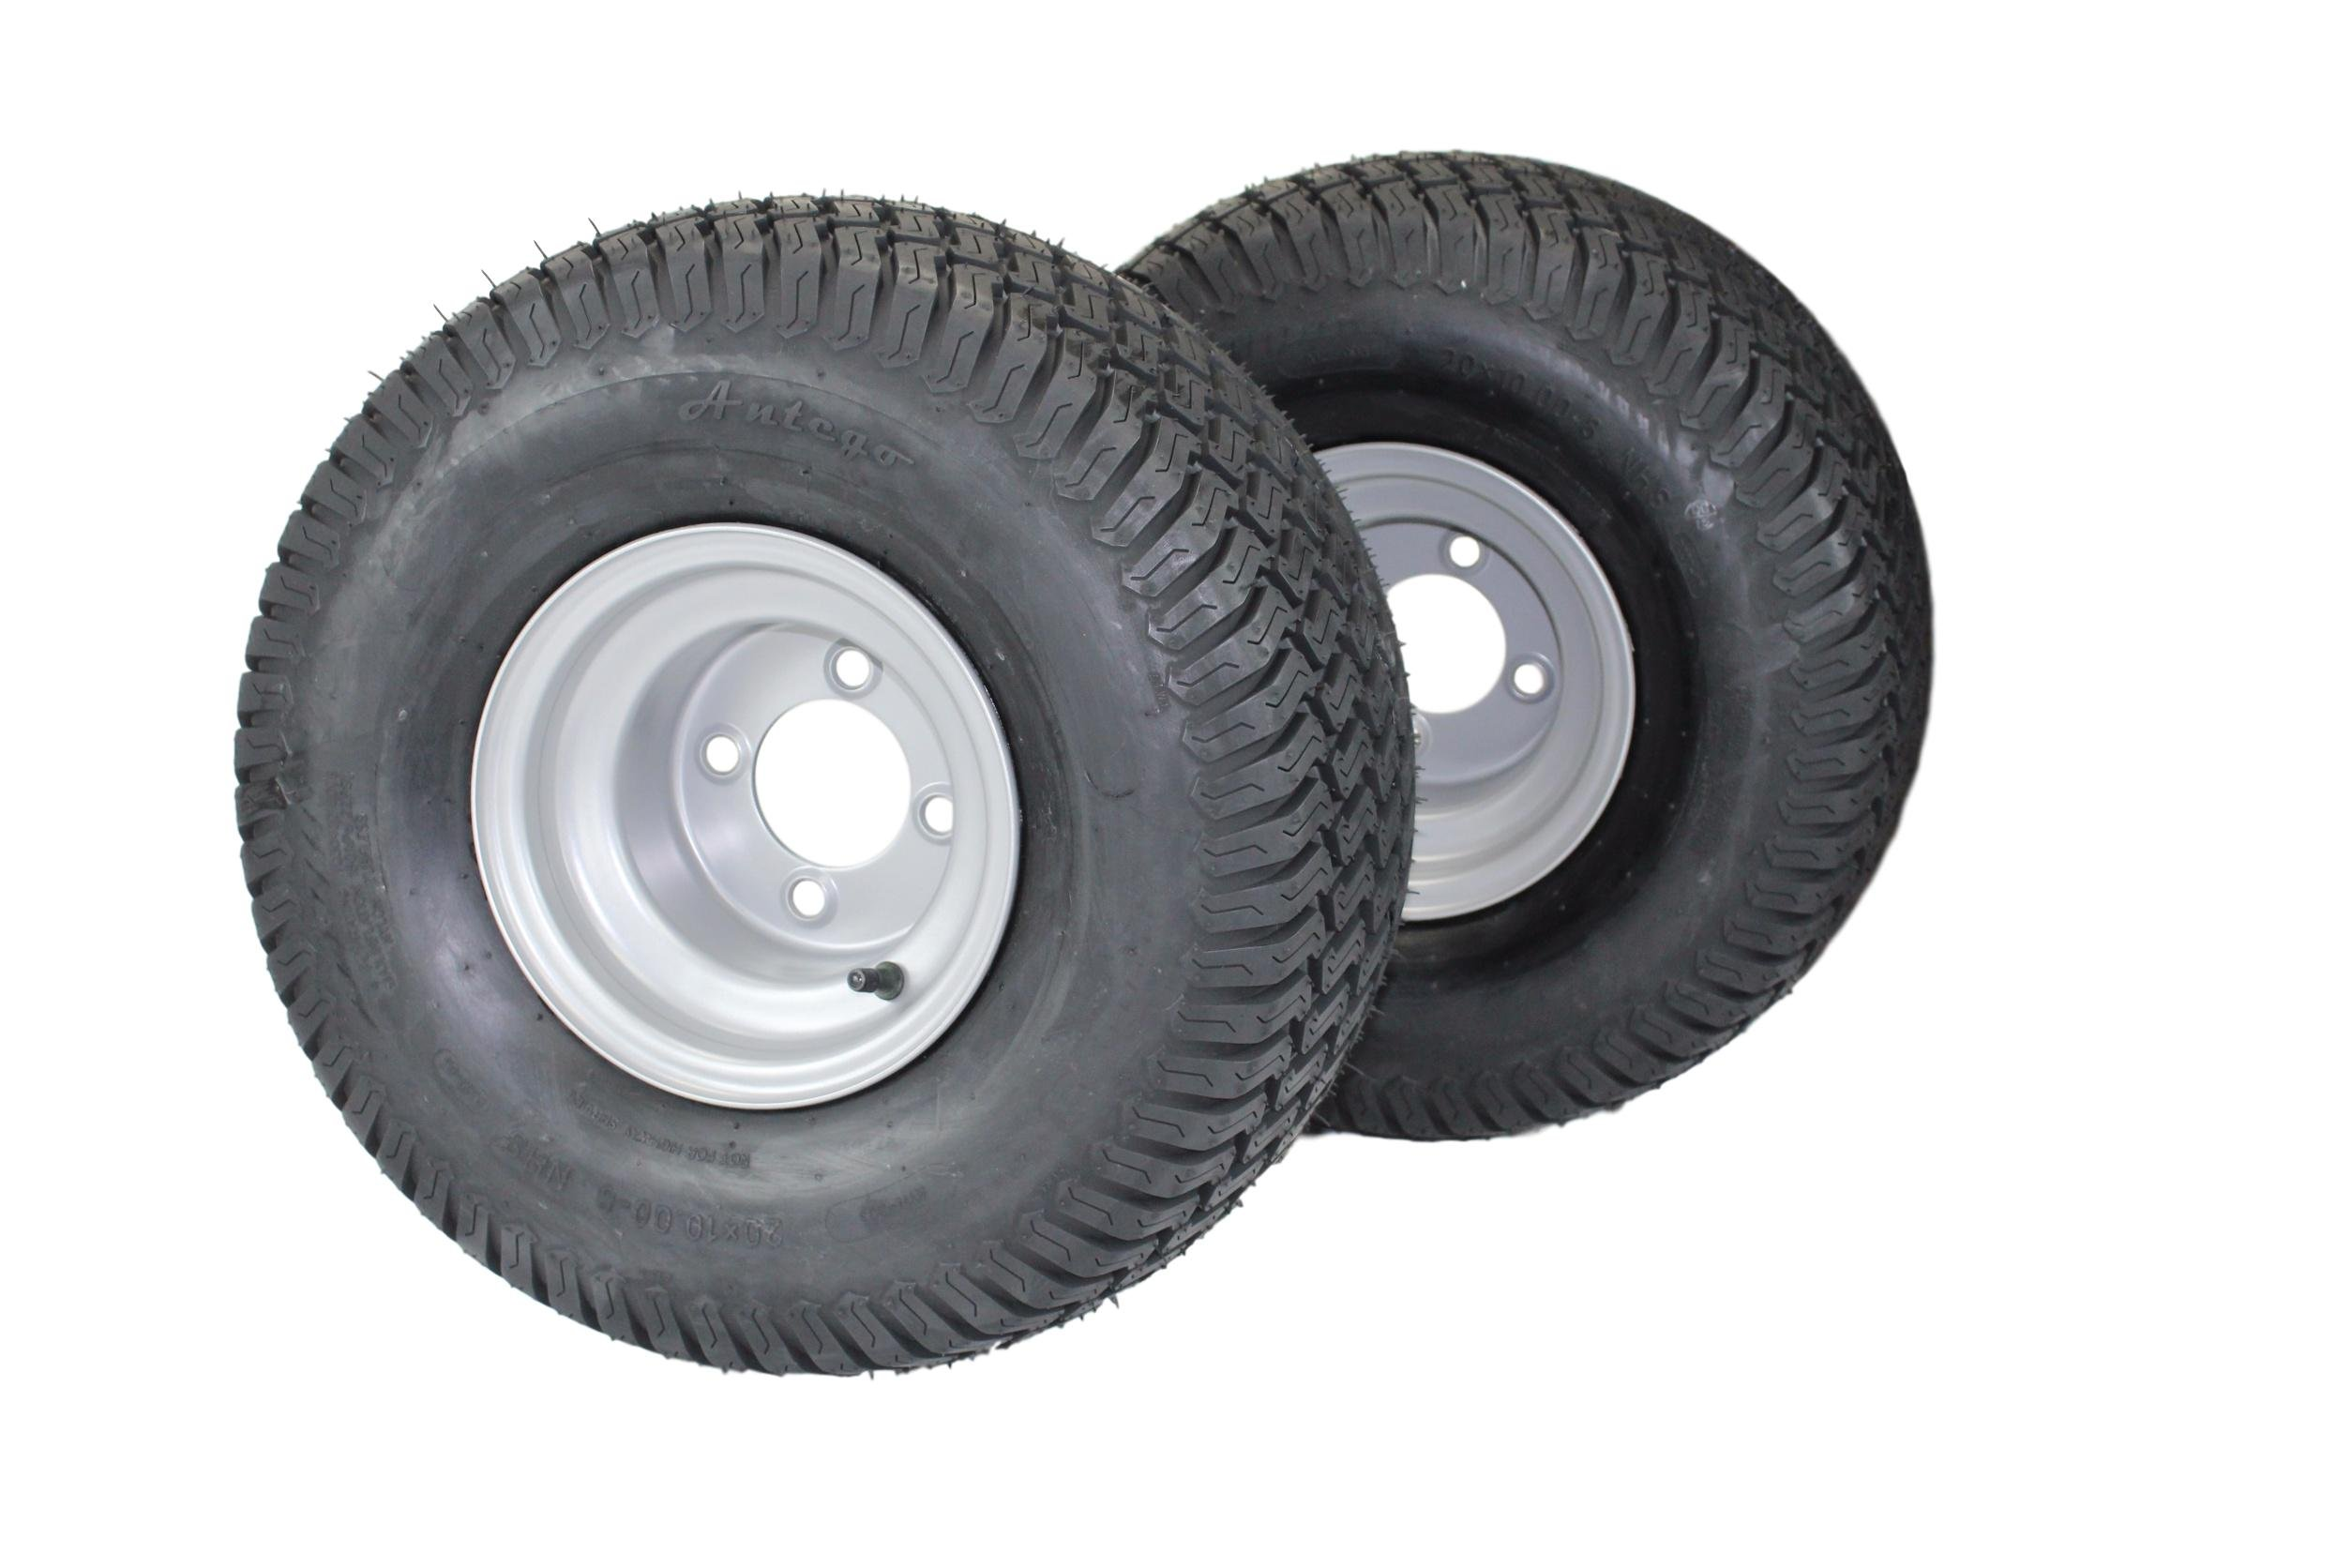 Antego Tire & Wheel (Set of 2) 20x10.00-8 Tires & Wheels 4 Ply for Lawn & Garden Mower Turf Tires